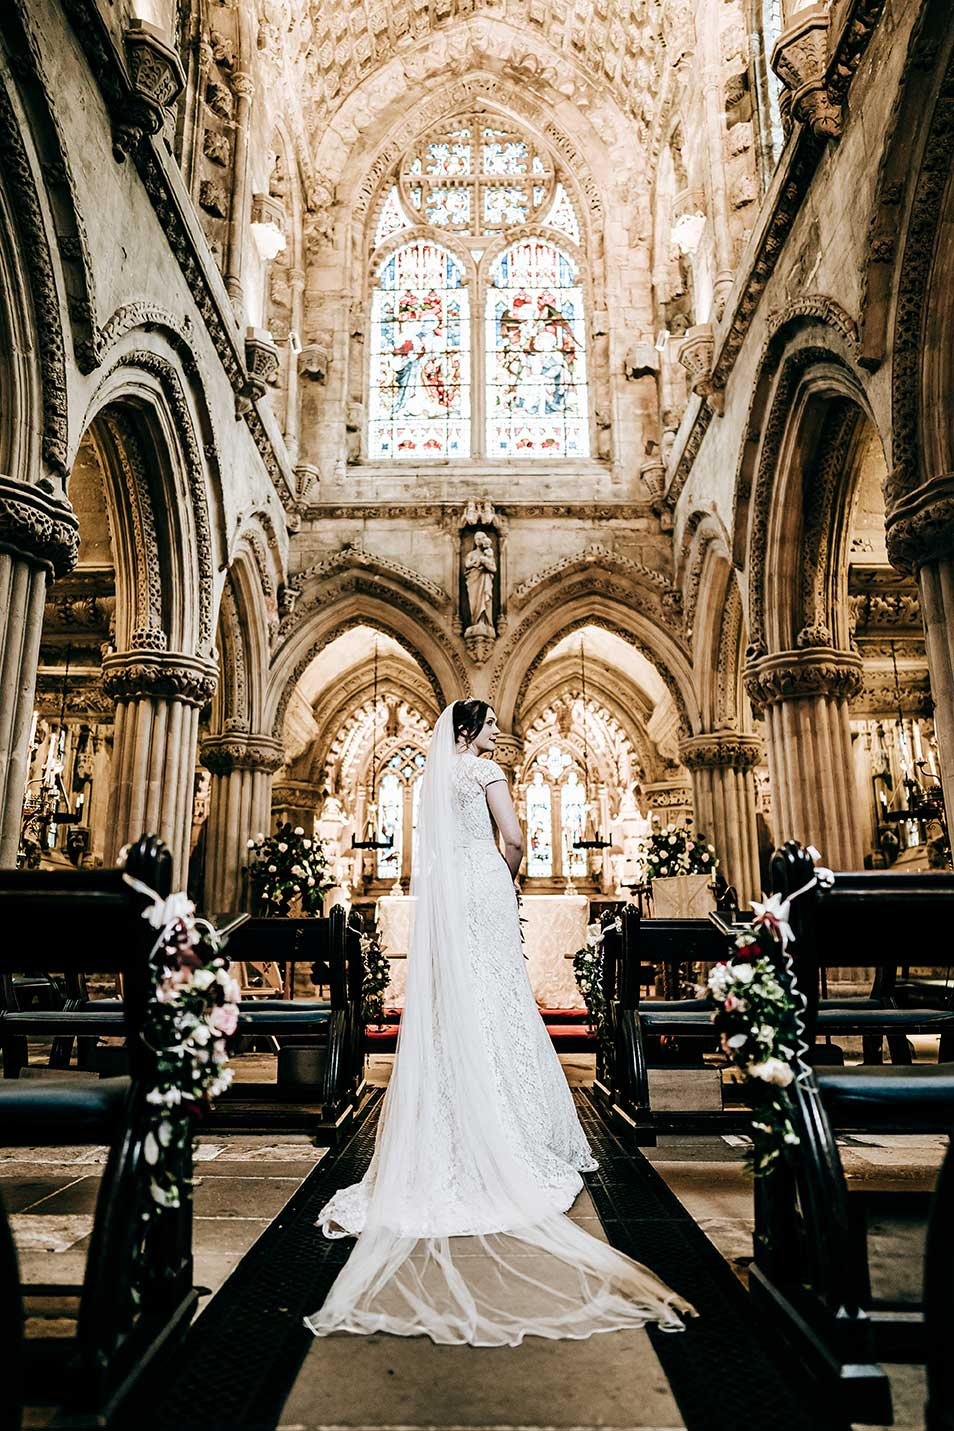 Rosslyn Chapel wedding photography featuring a bride inside the chapel